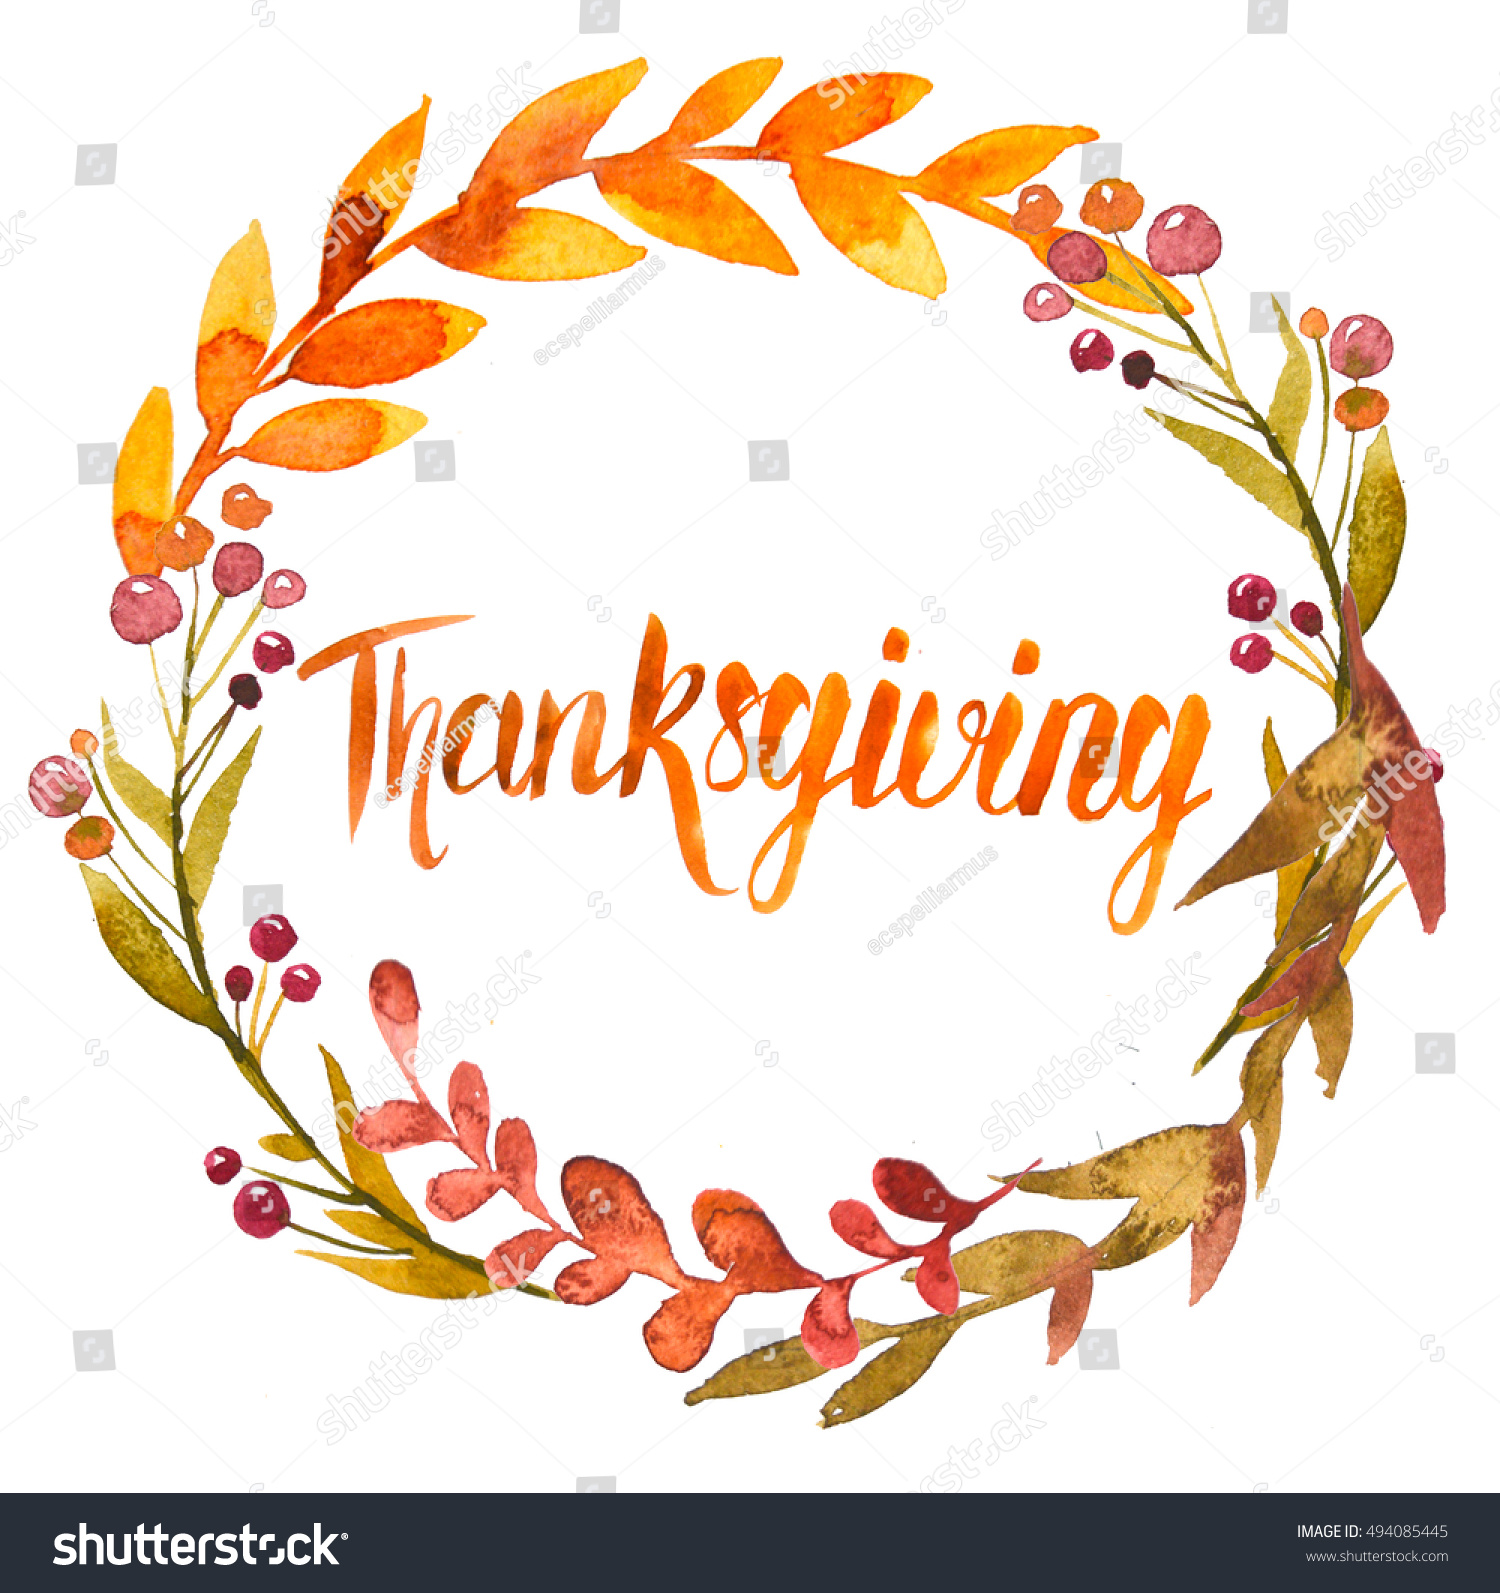 To acquire Garland Thanksgiving clip art pictures picture trends